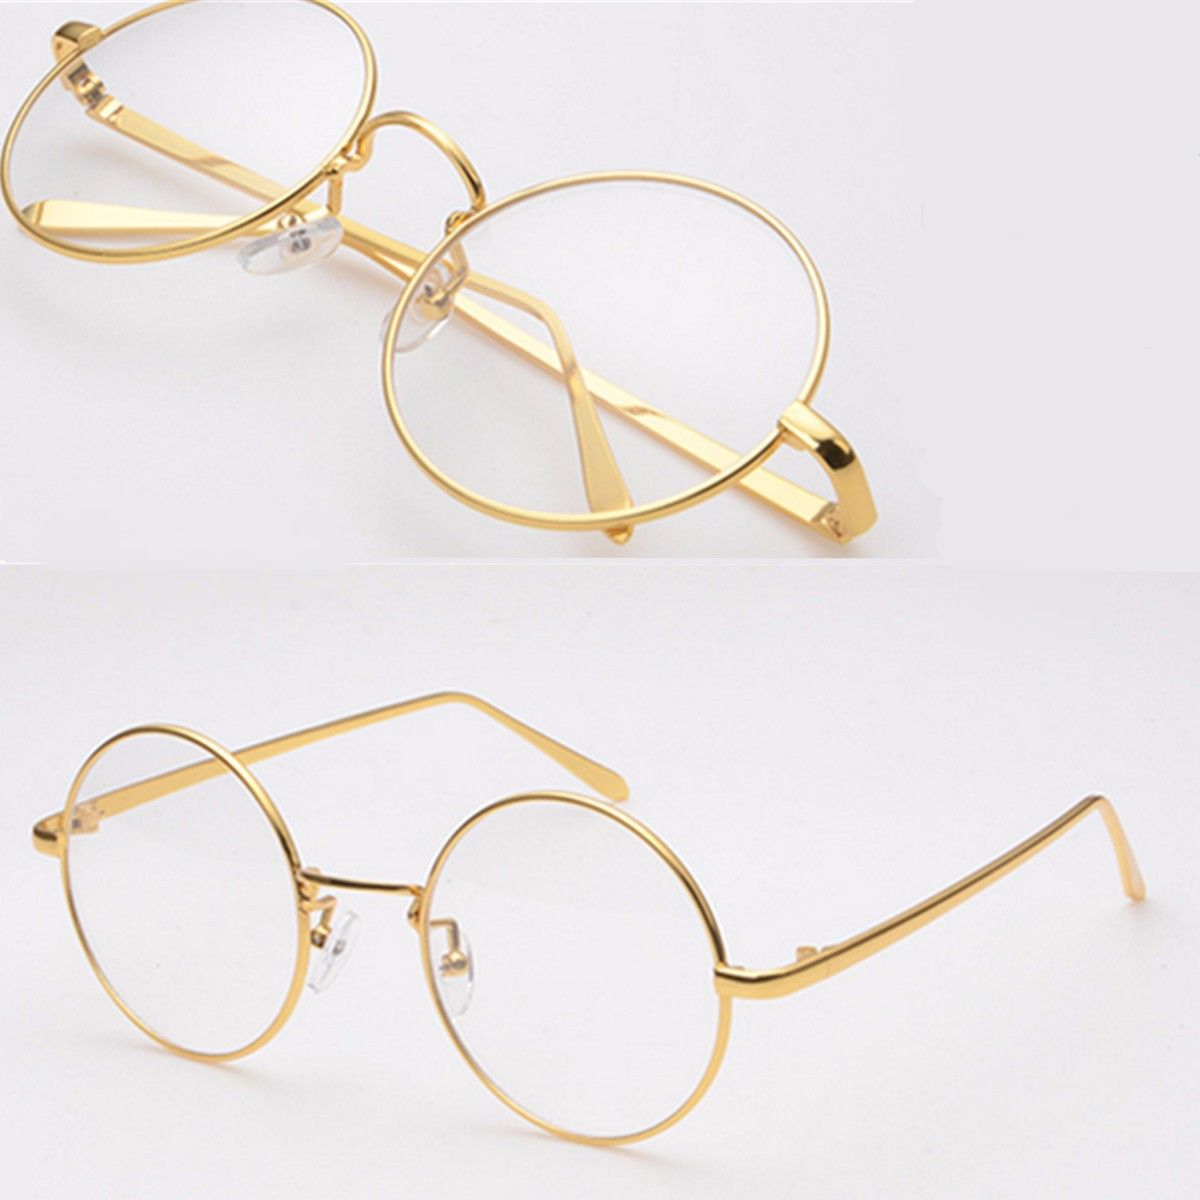 b2e87cd0e60a GOLD Metal Vintage Round Eyeglass Frame Clear Lens Full-Rim Glasses ...